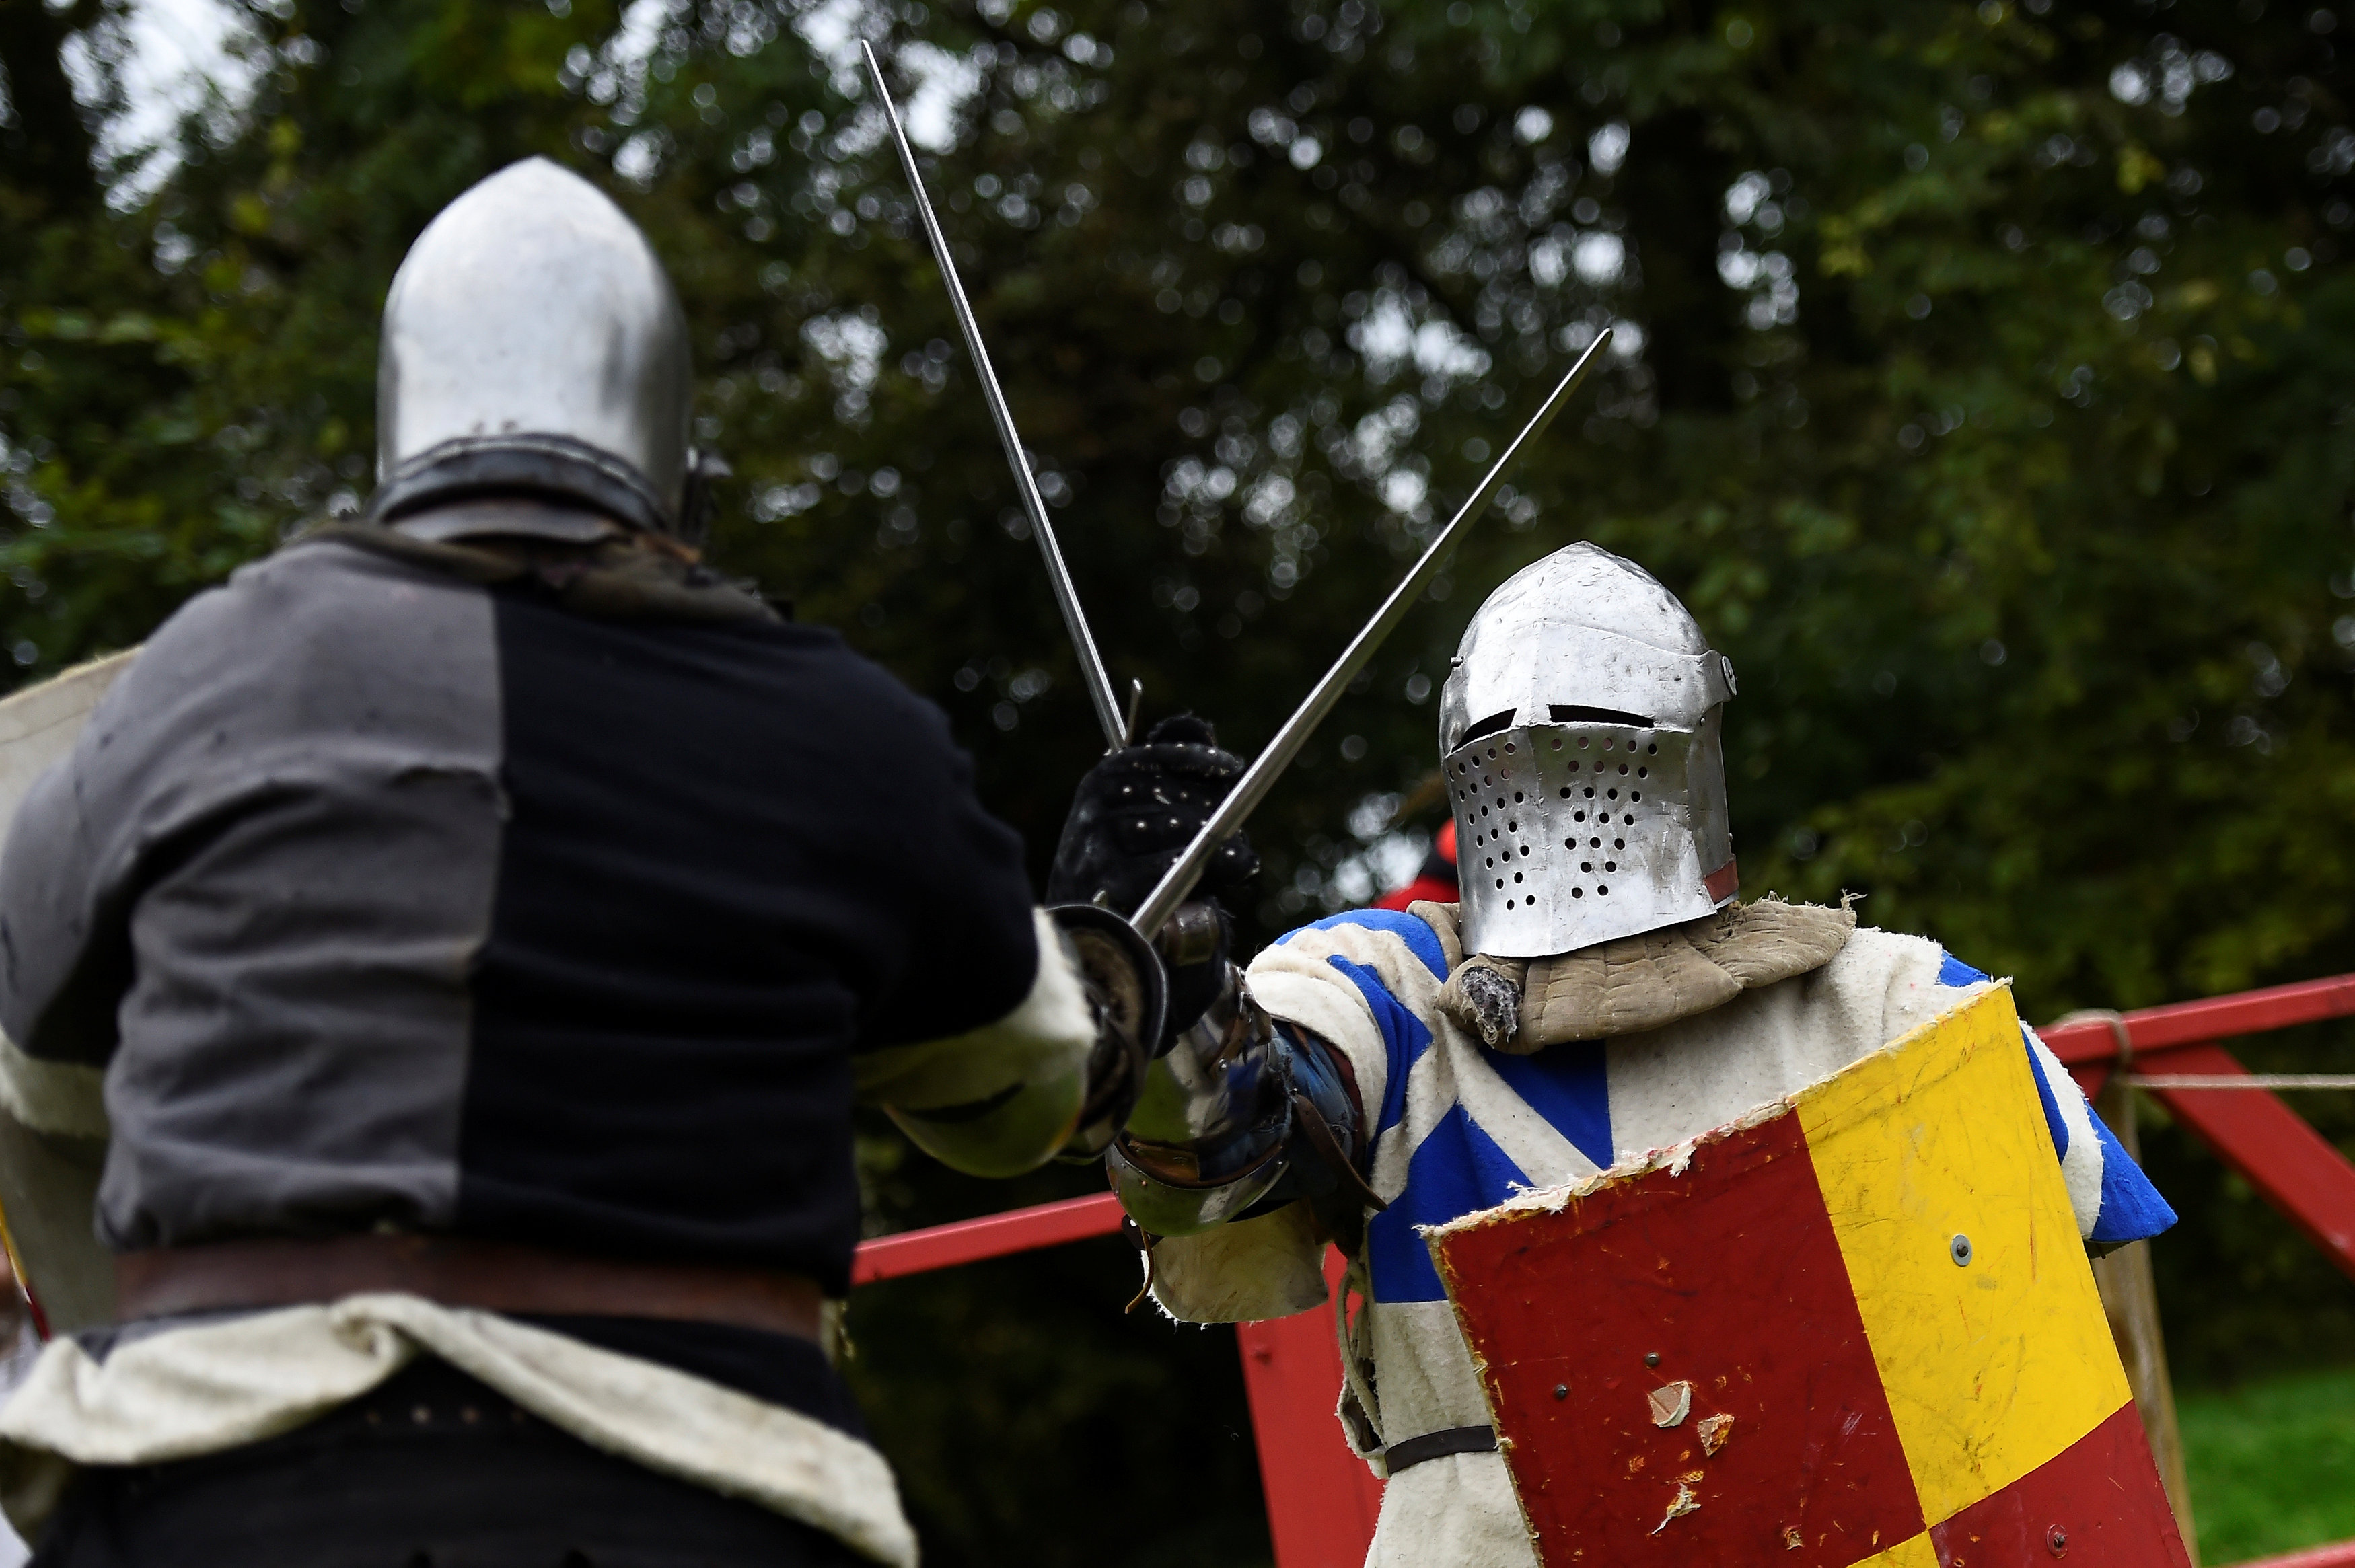 Knights duel with swords during a medieval combat festival at Claregalway castle in Galway